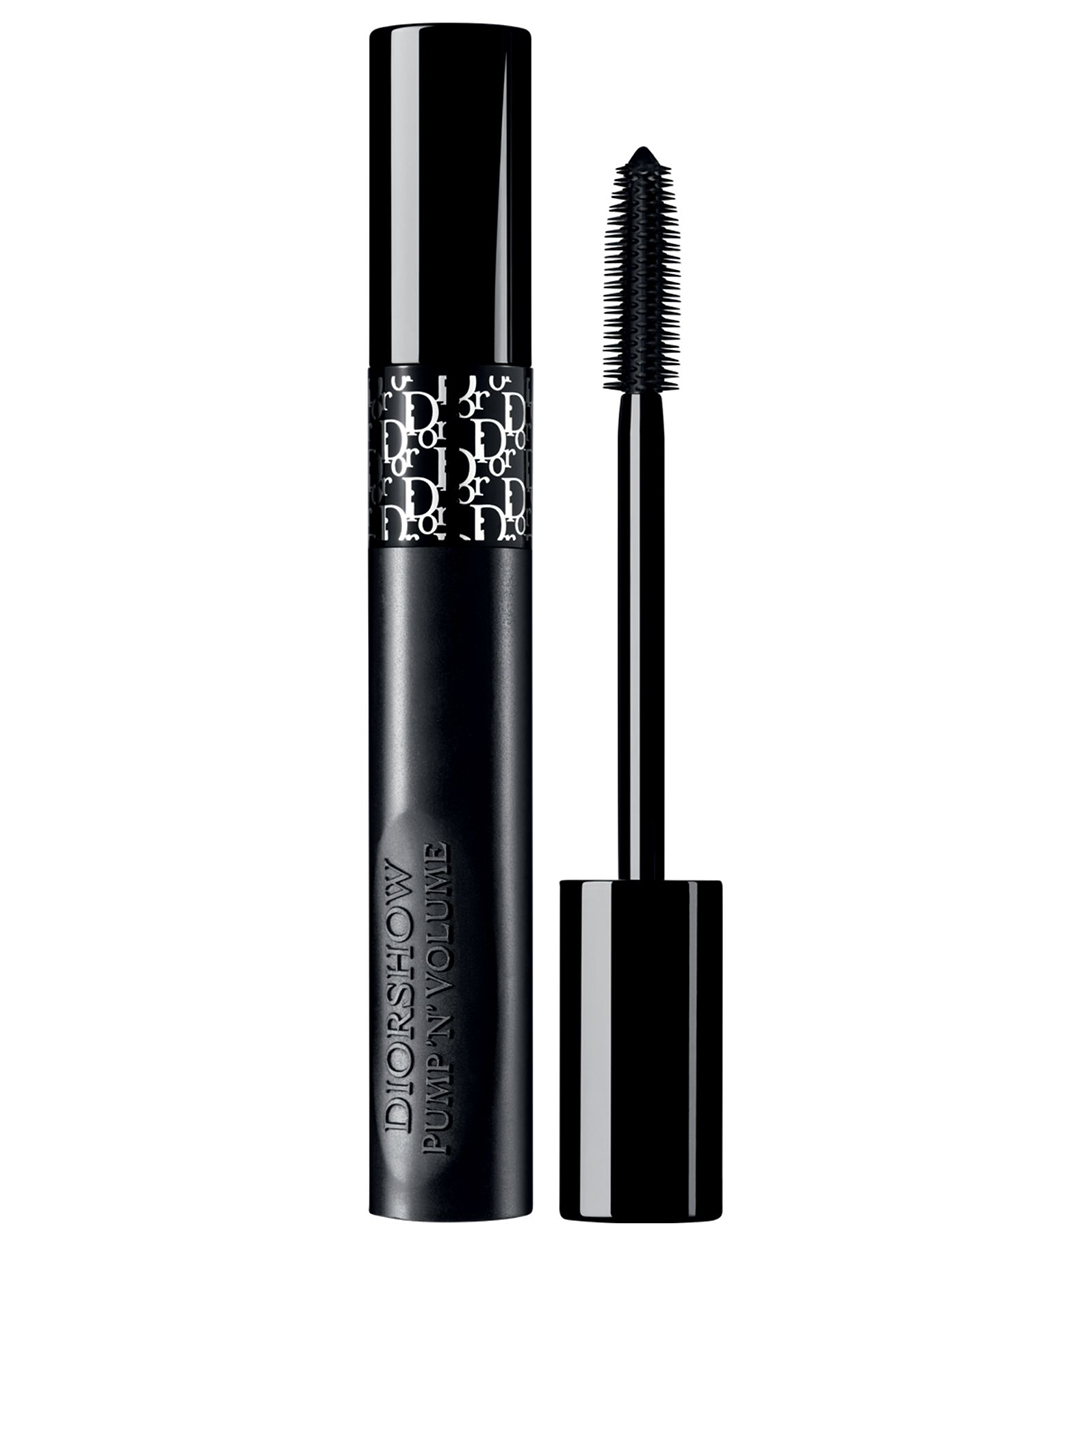 DIOR Diorshow Pump'N'Volume Instant Volume Squeezable Mascara Beauty Black